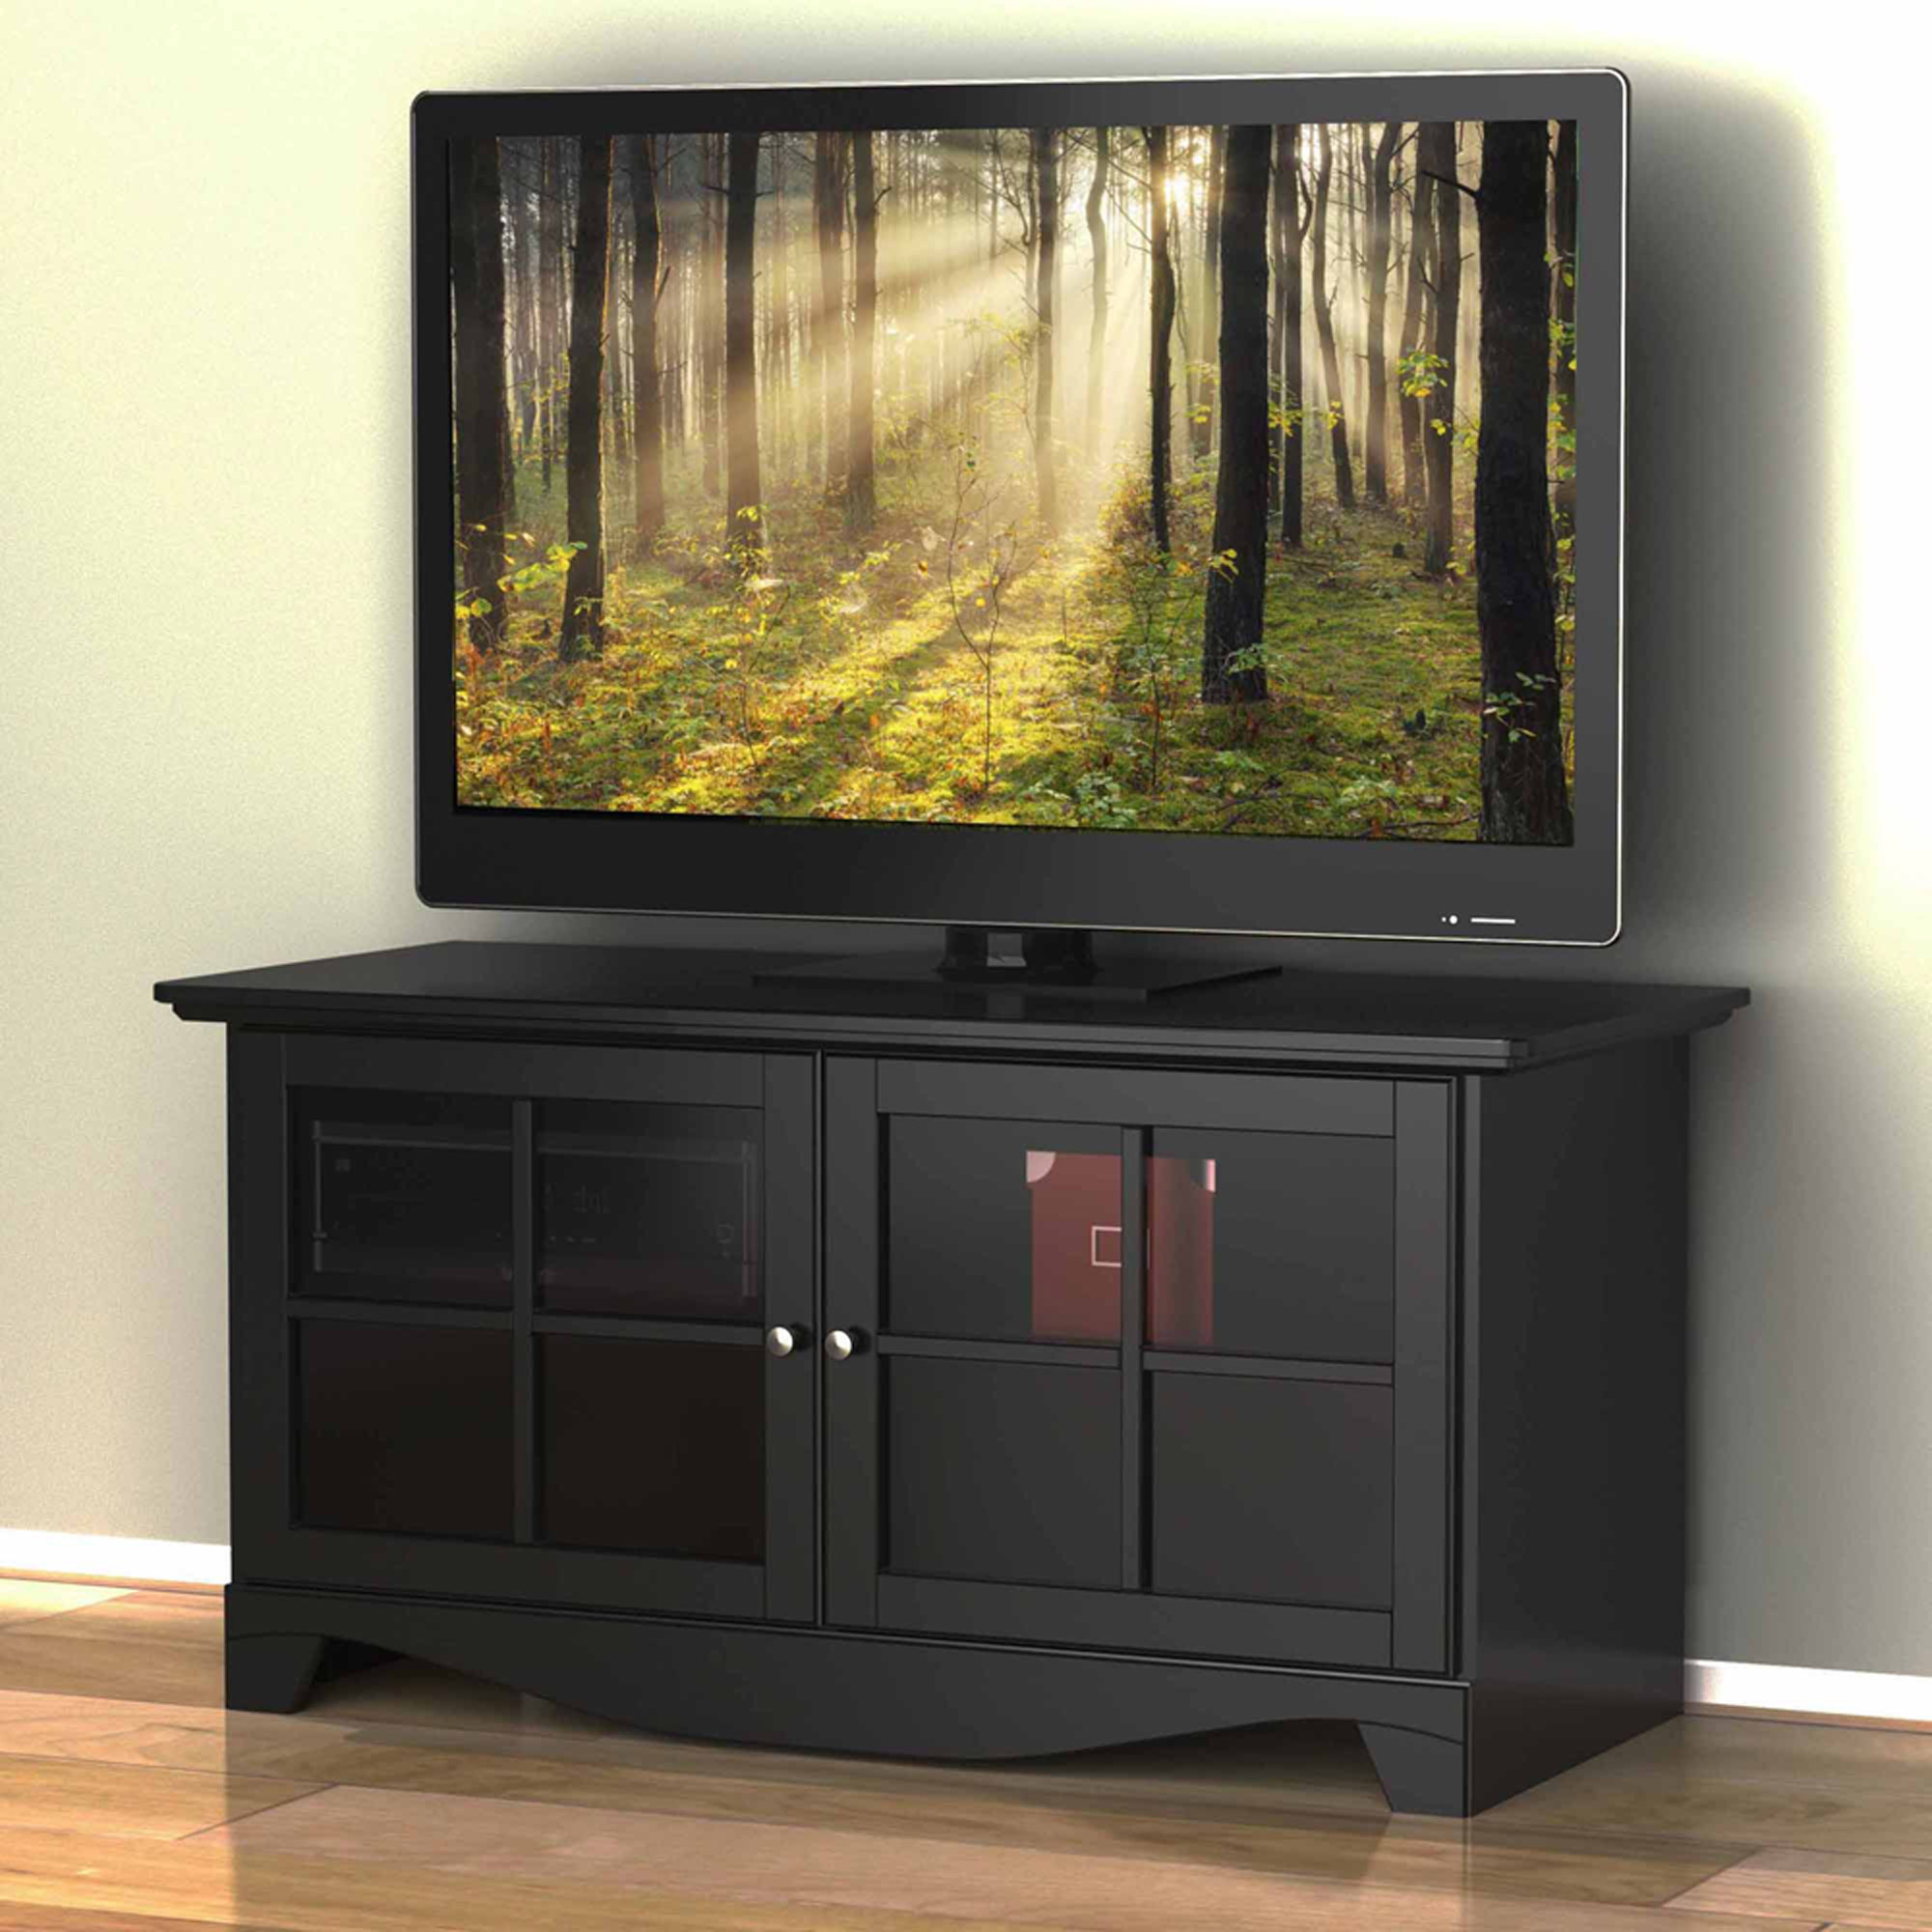 Pinnacle TV Stand, for TVs up to 52""